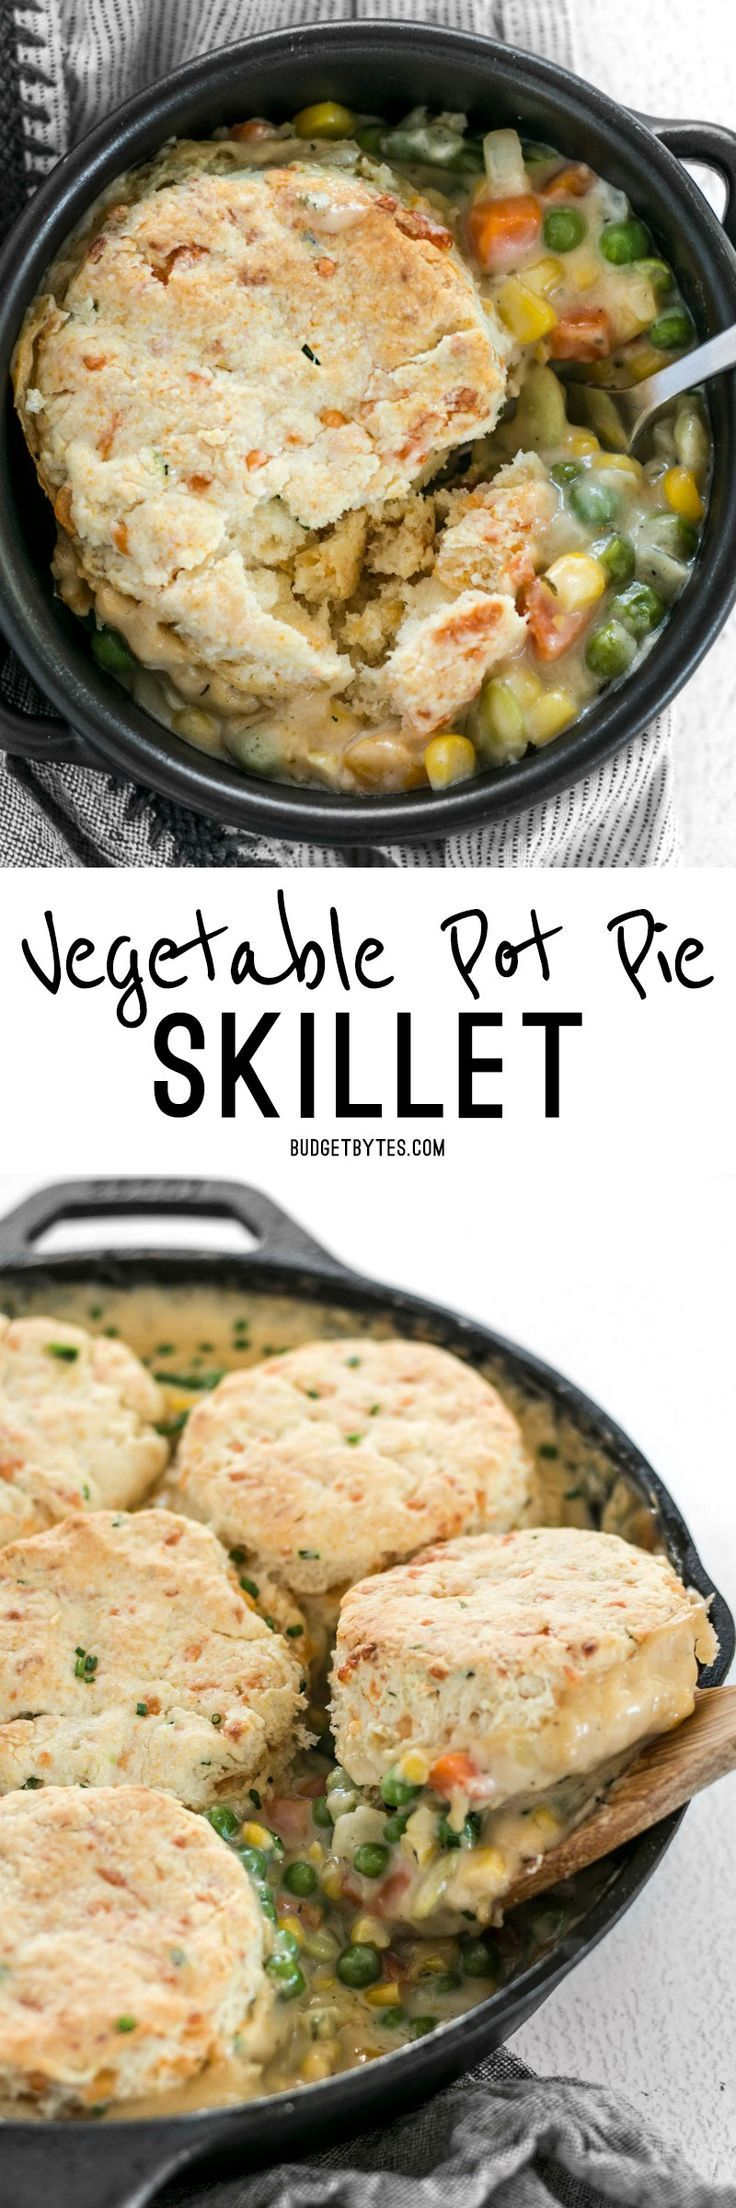 This rich and comforting Vegetable Pot Pie Skillet meal is made faster and easy for weeknight dinners thanks to frozen vegetables. @budgetbytes